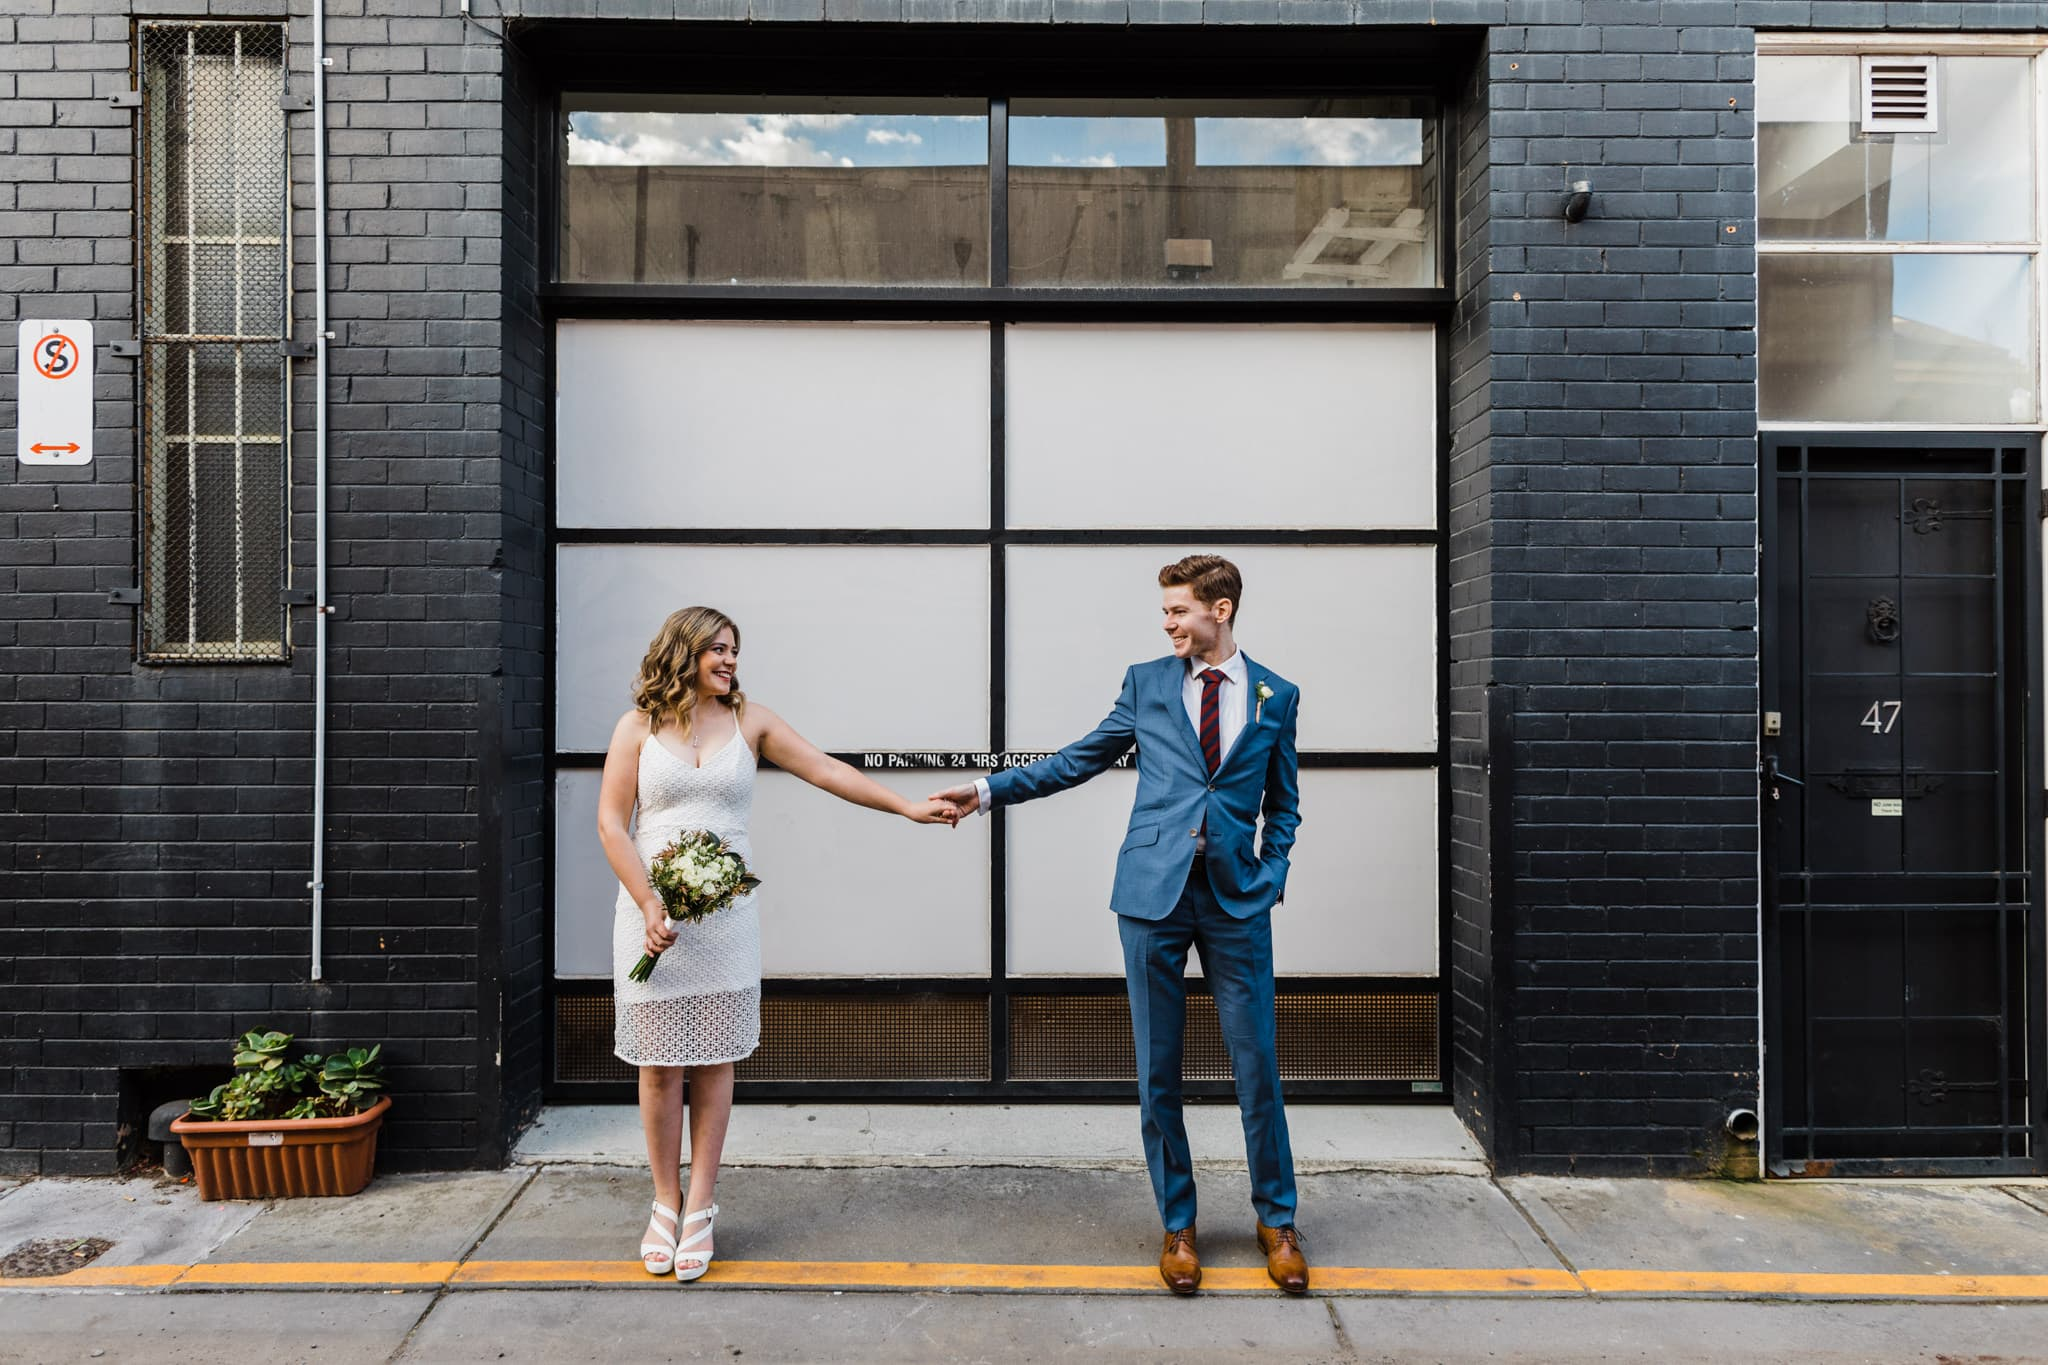 urban style wedding photos in melbourne